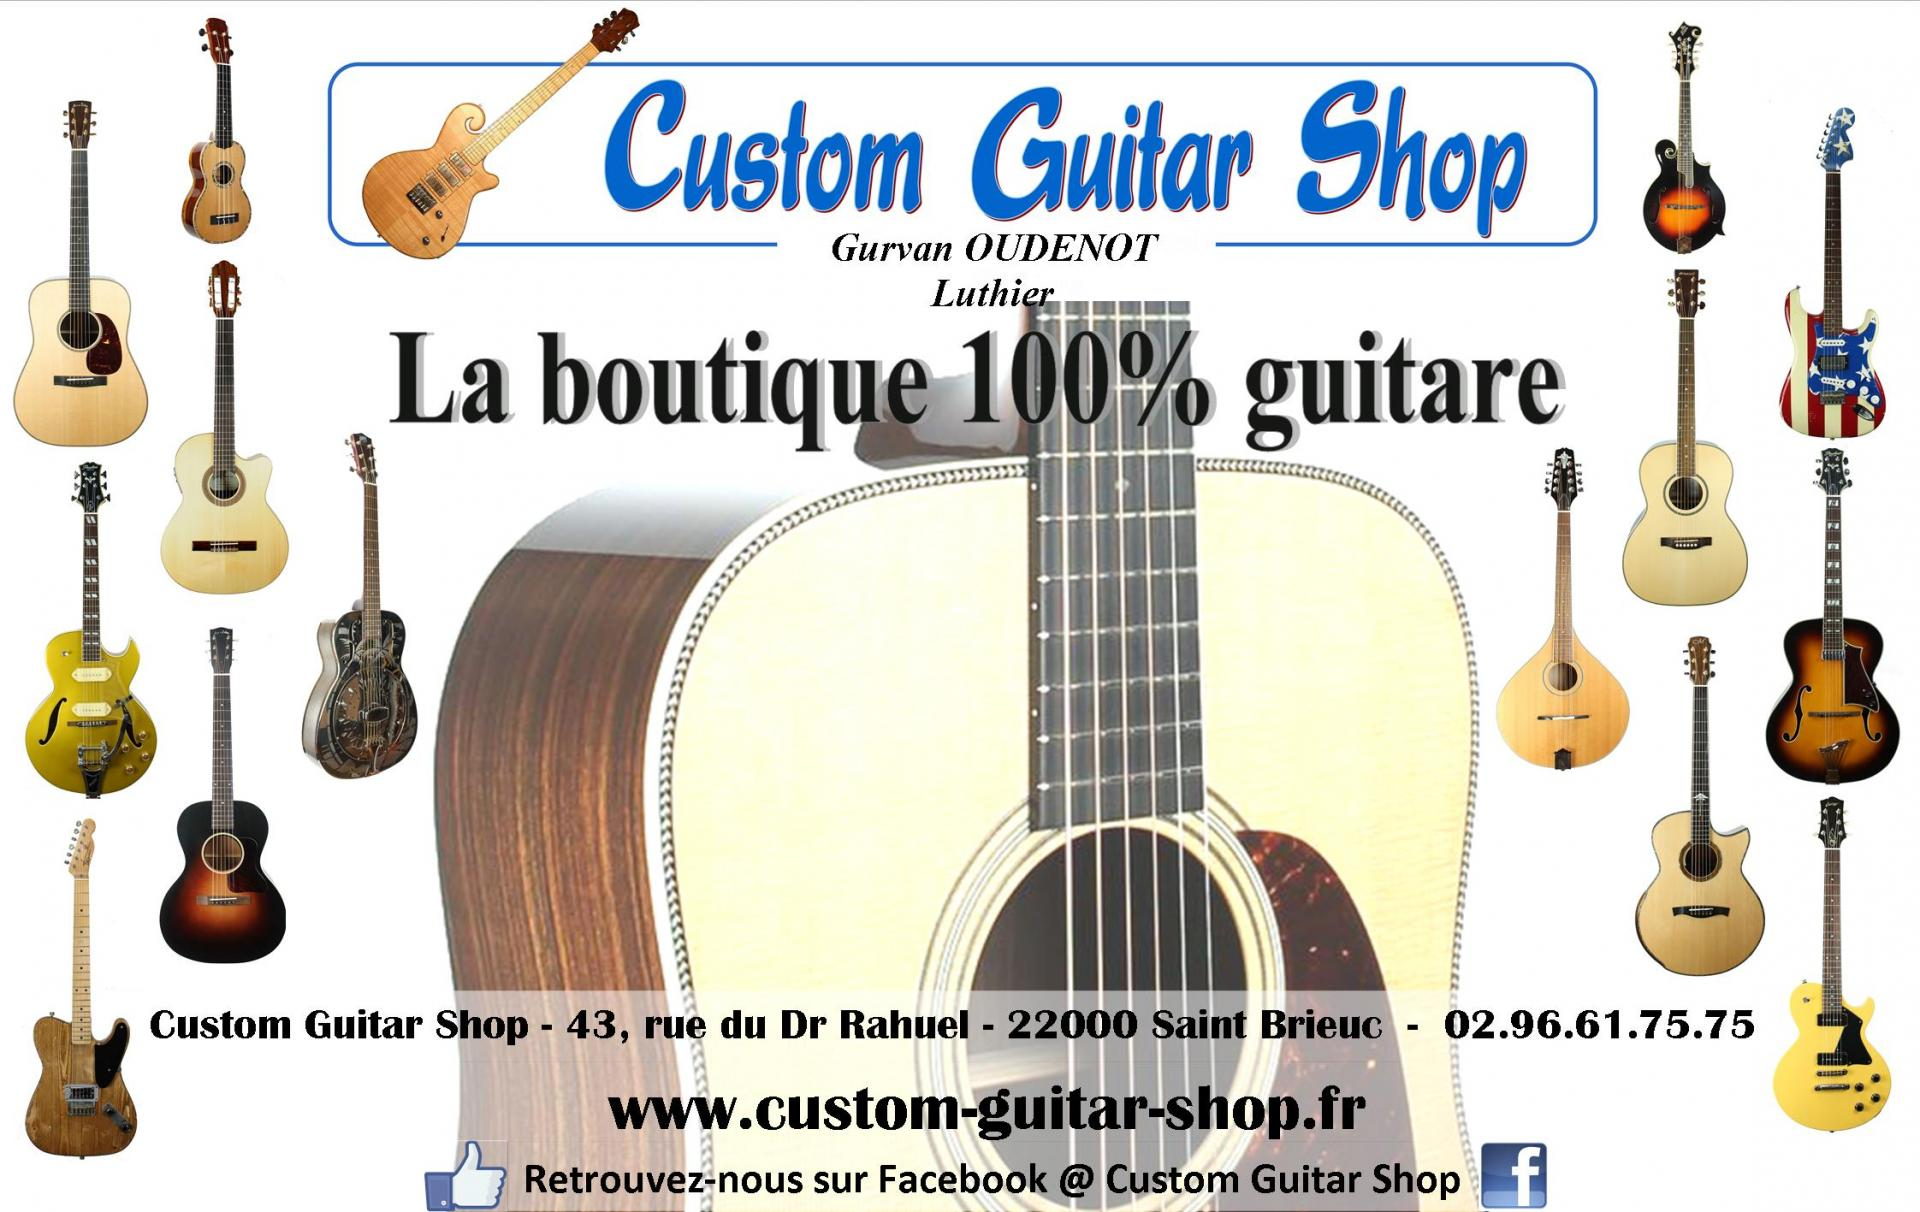 CUSTOM GUITAR SHOP - SAINT BRIEUC